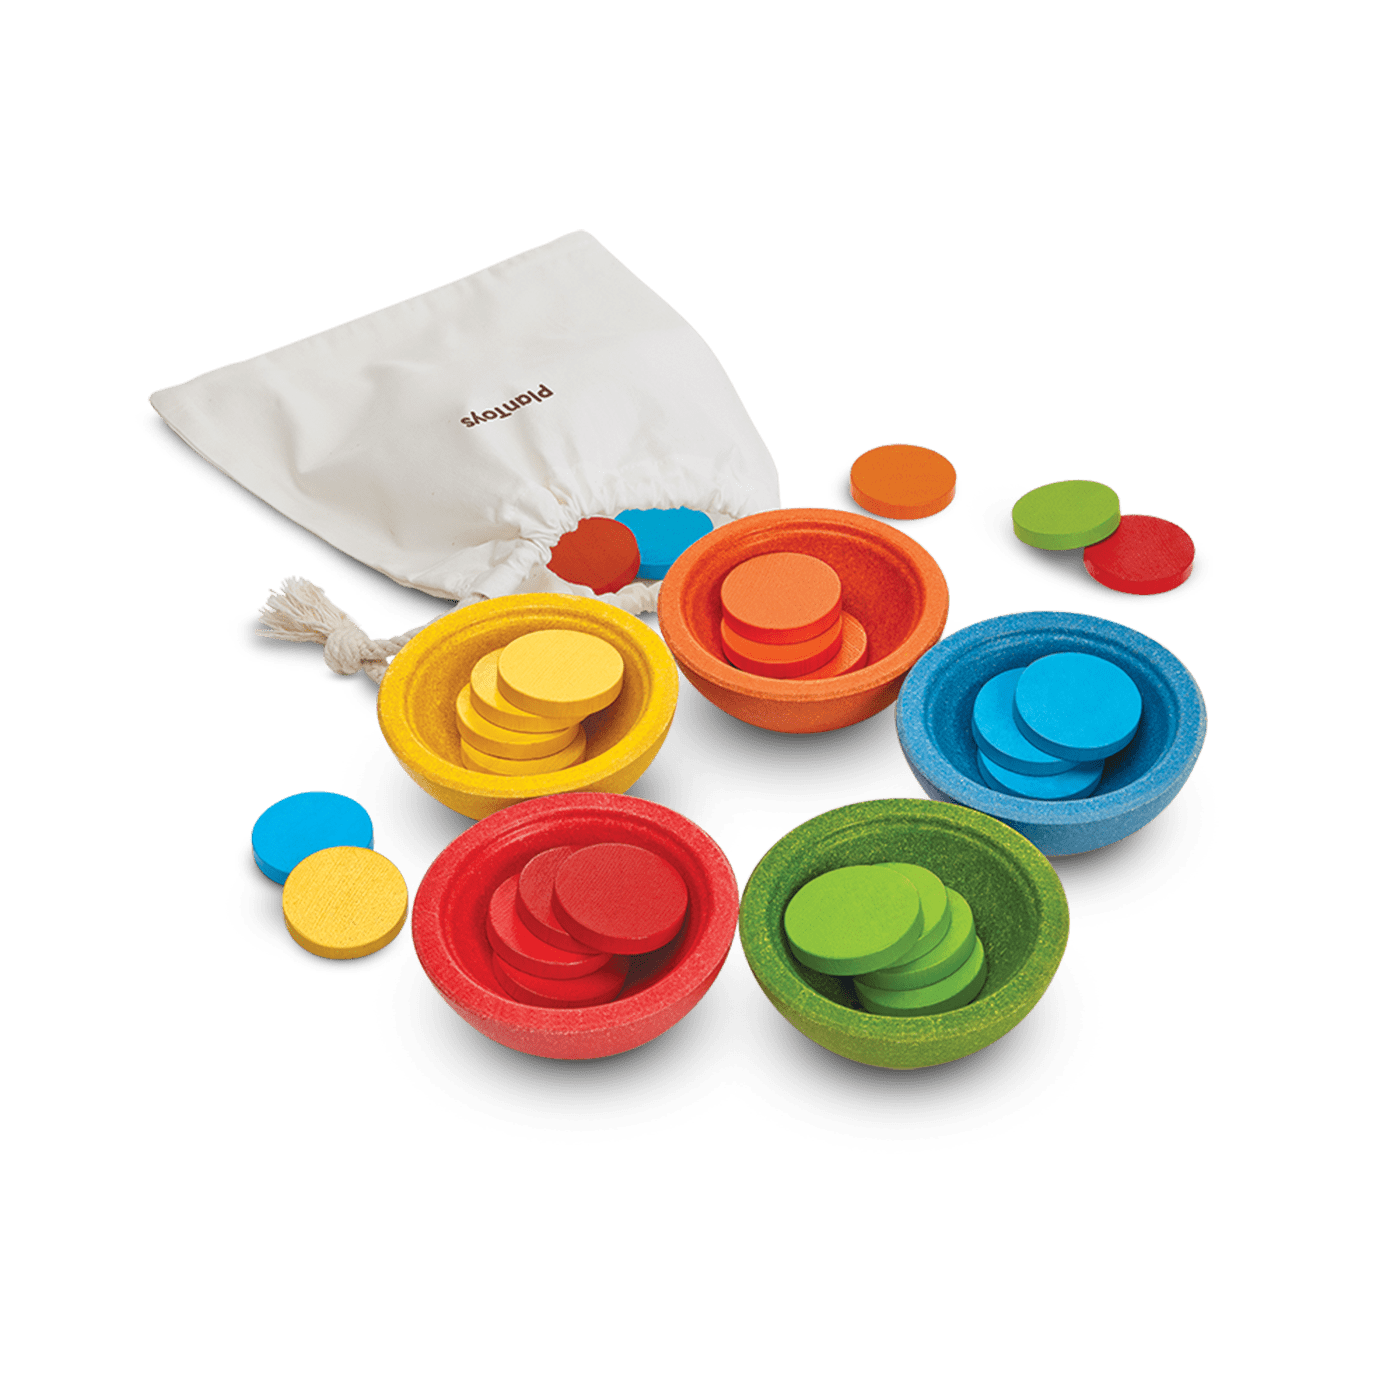 5360_PlanToys_SORT_and_COUNT_CUPS_Learning_and_Education_Mathematical_Fine_Motor_Coordination_18m_Wooden_toys_Education_toys_Safety_Toys_Non-toxic_0.png